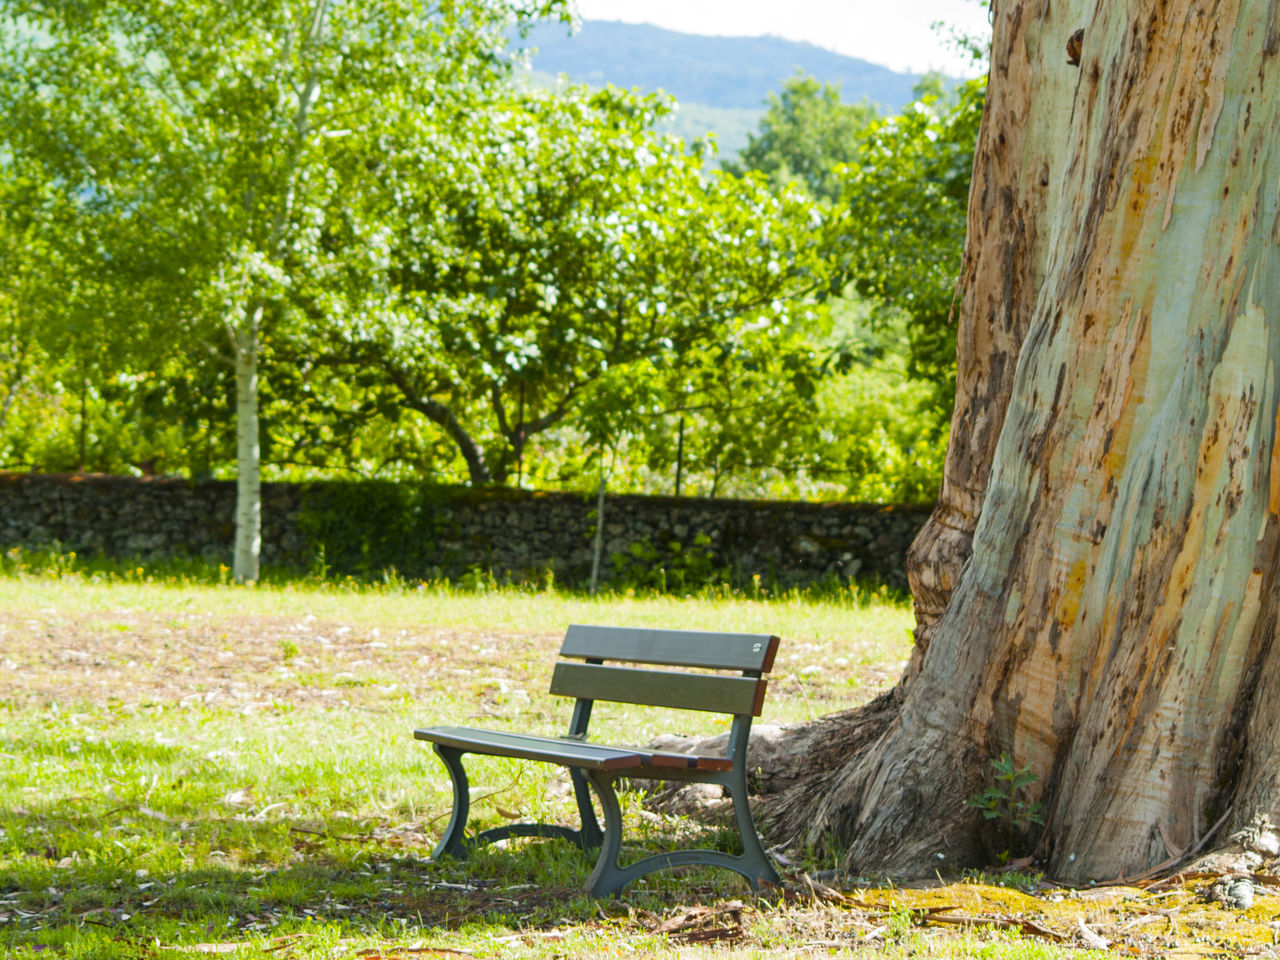 tree, day, grass, no people, chair, outdoors, nature, tree trunk, beauty in nature, sky